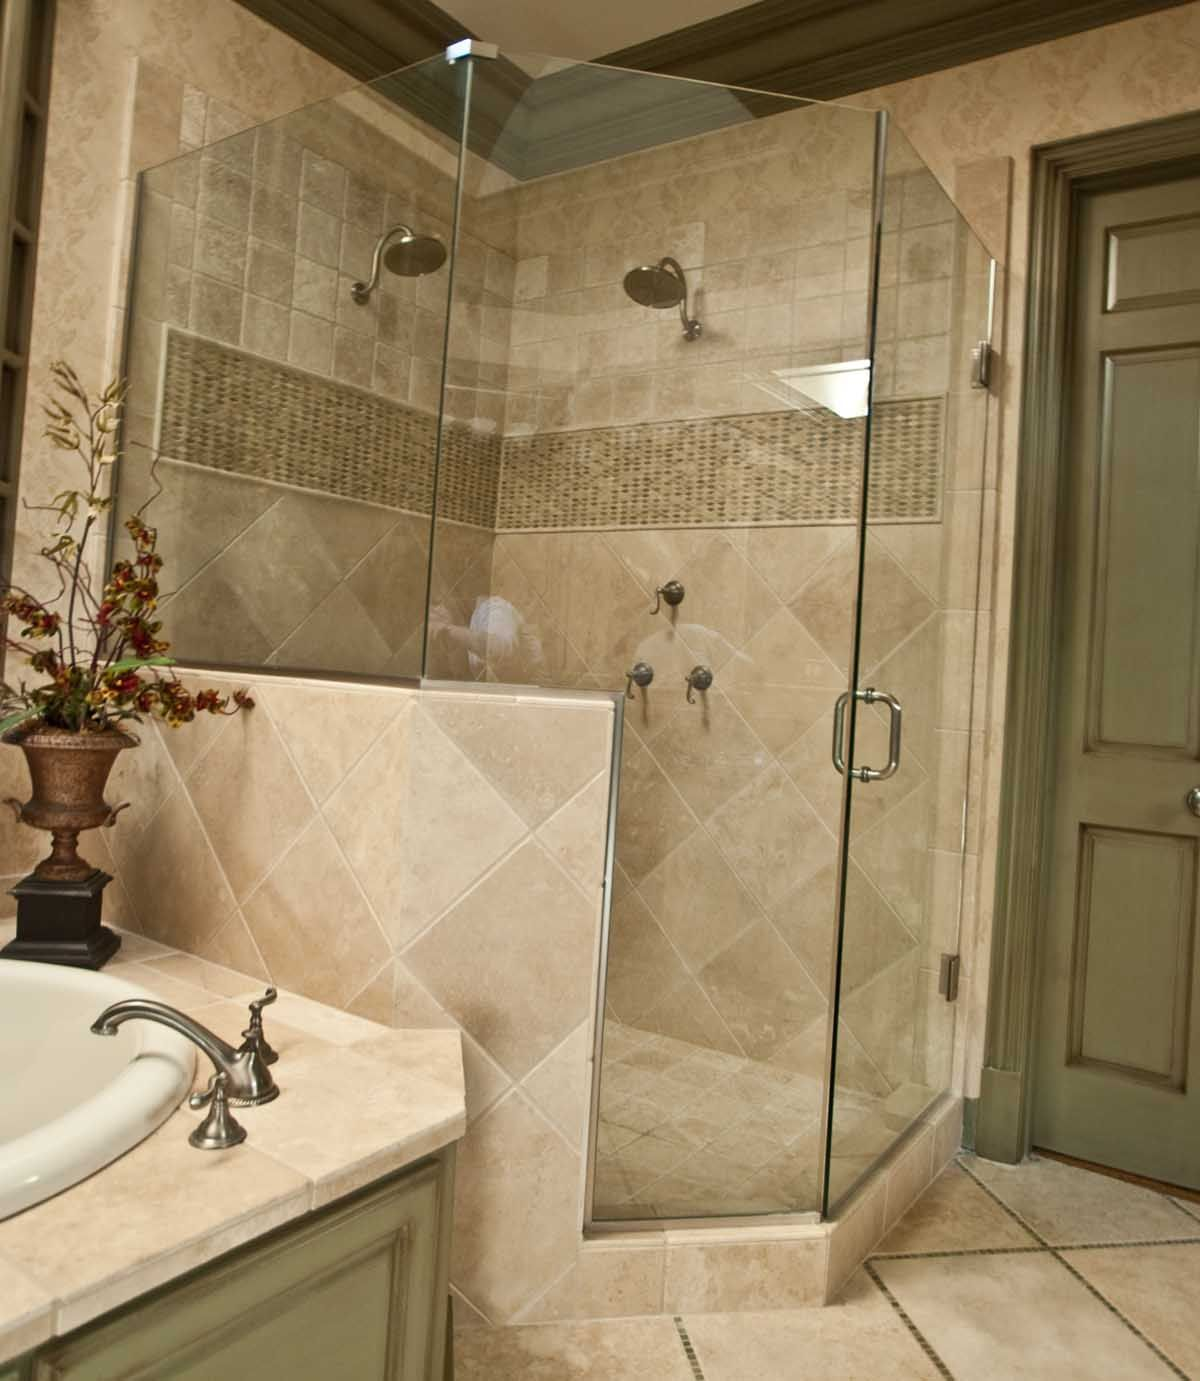 bathroom remodeling ideas bathroom remodeling ideas for small bathrooms from firmones styles - Ideas For Remodeling A Small Bathroom